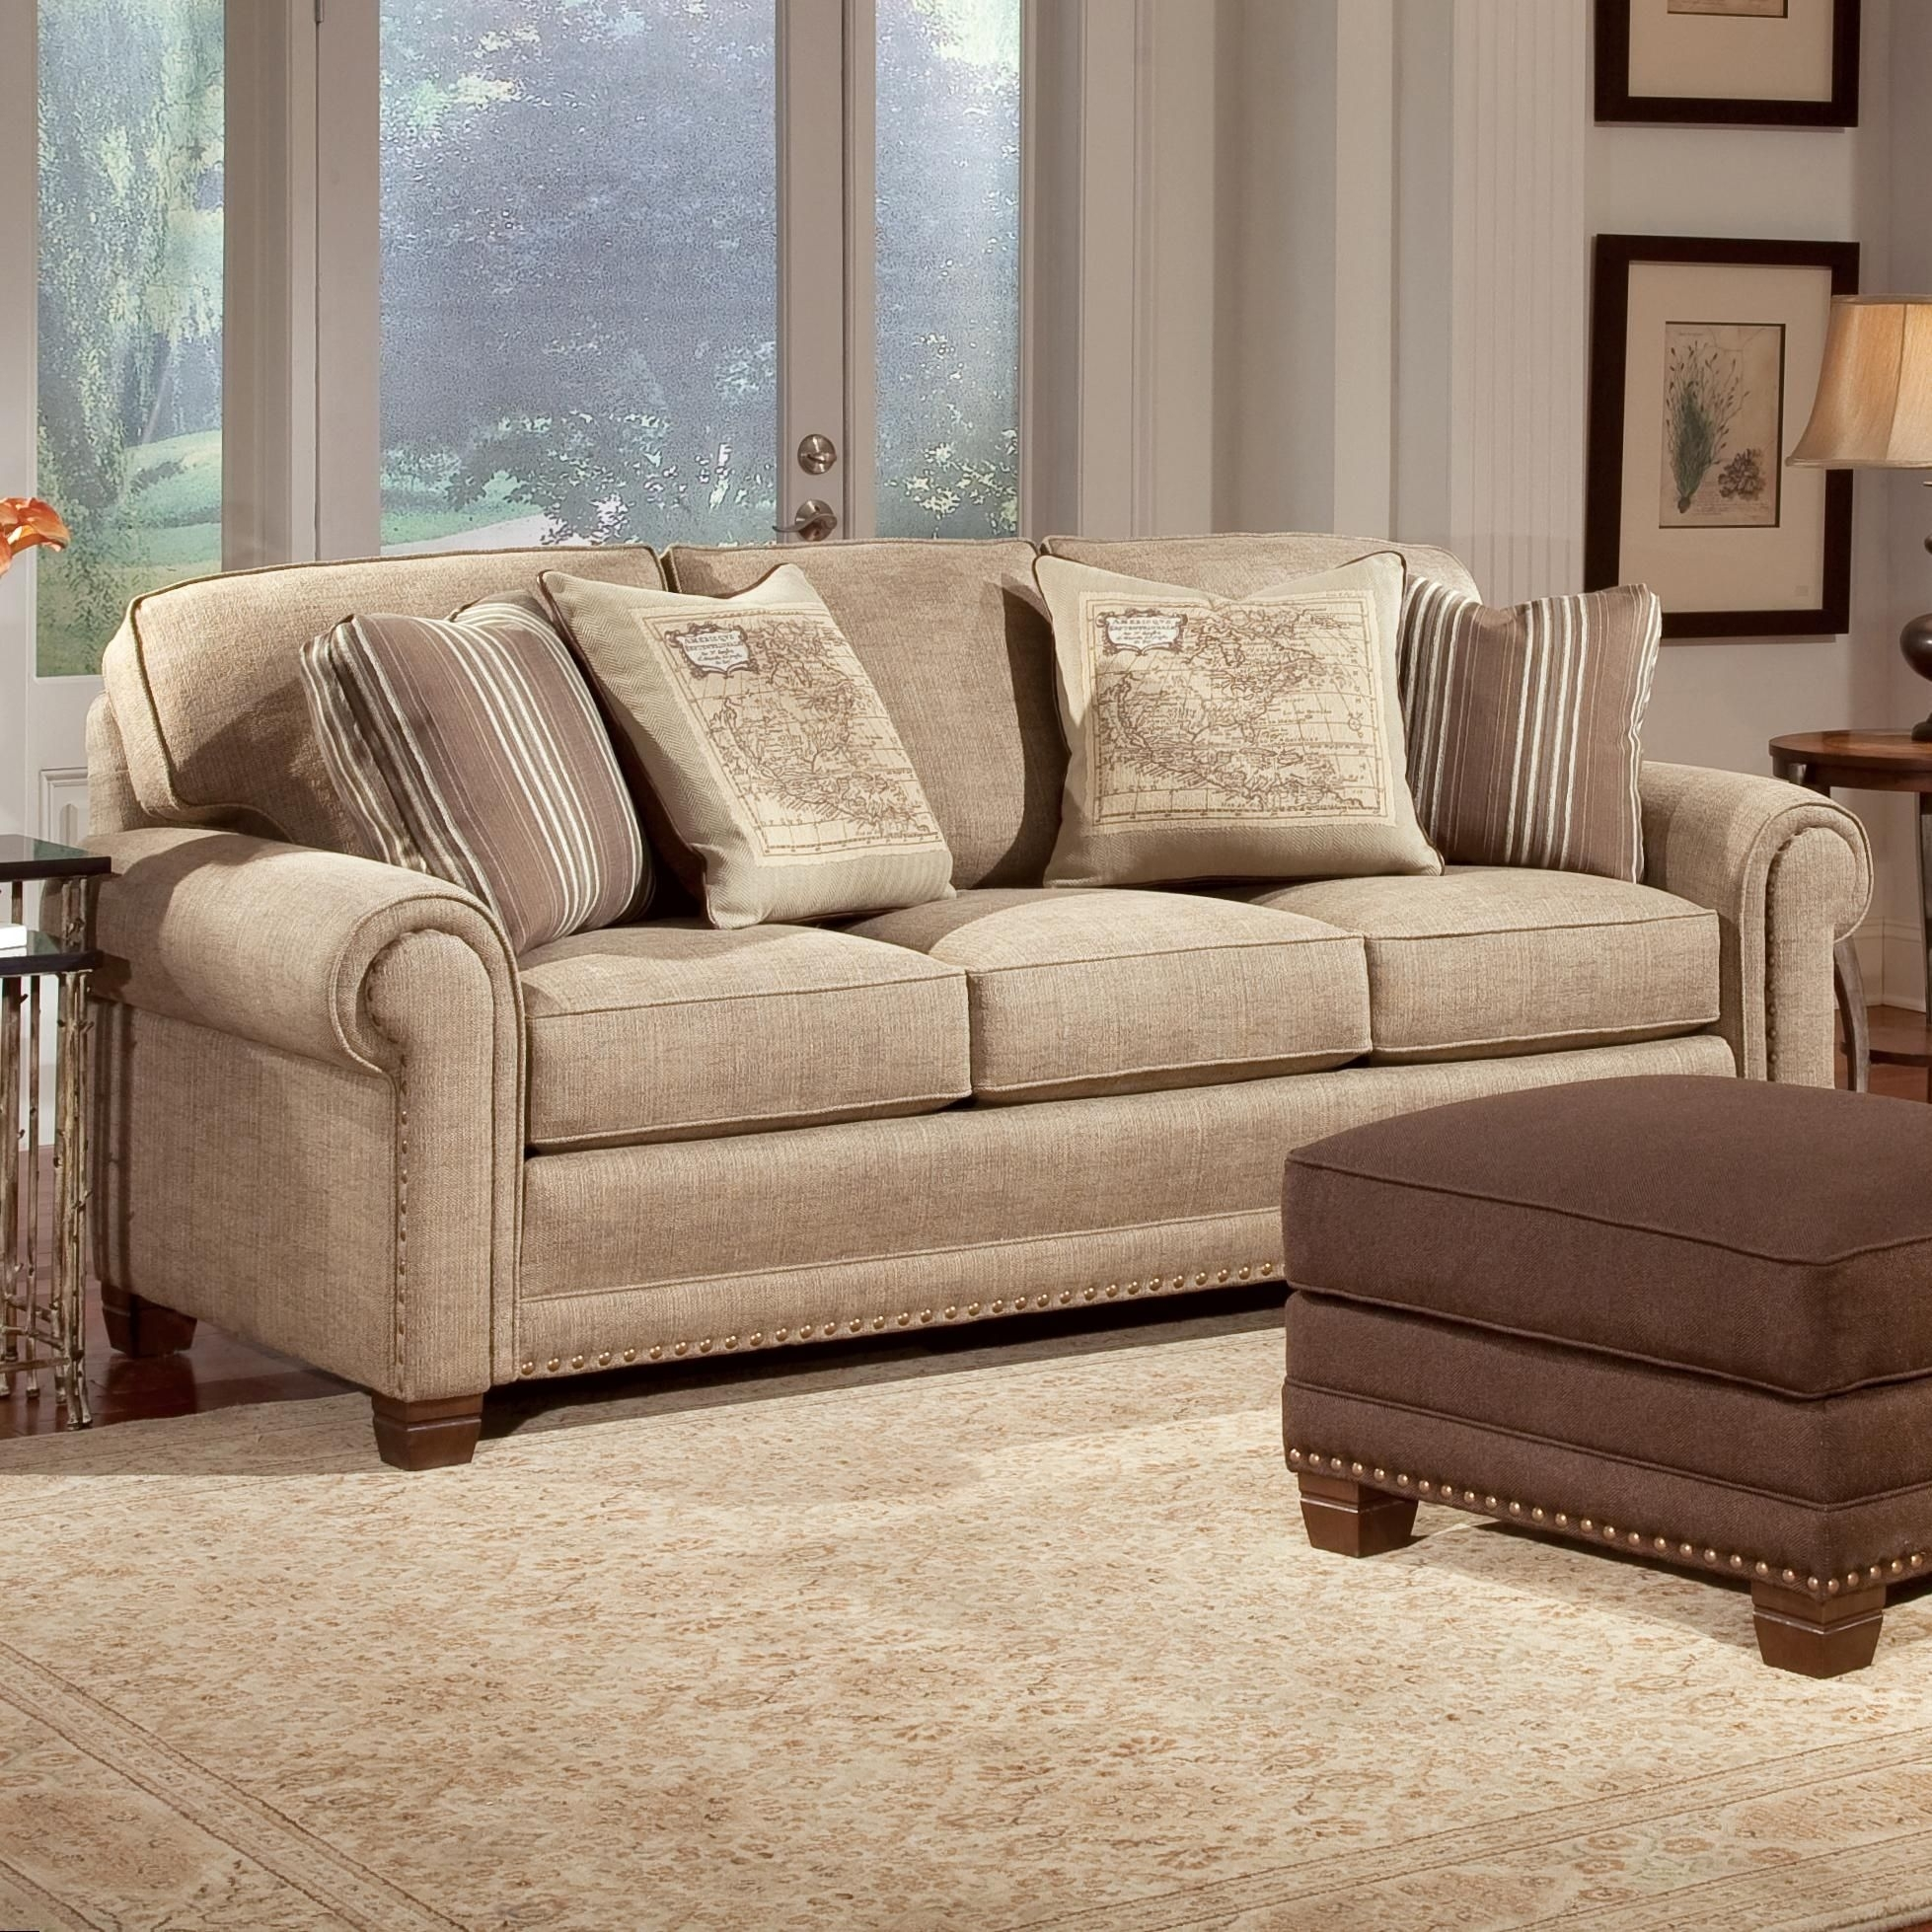 393 Traditional Stationary Sofapeter Lorentz Sofa In Great Room Inside Maryland Sofas (View 10 of 10)